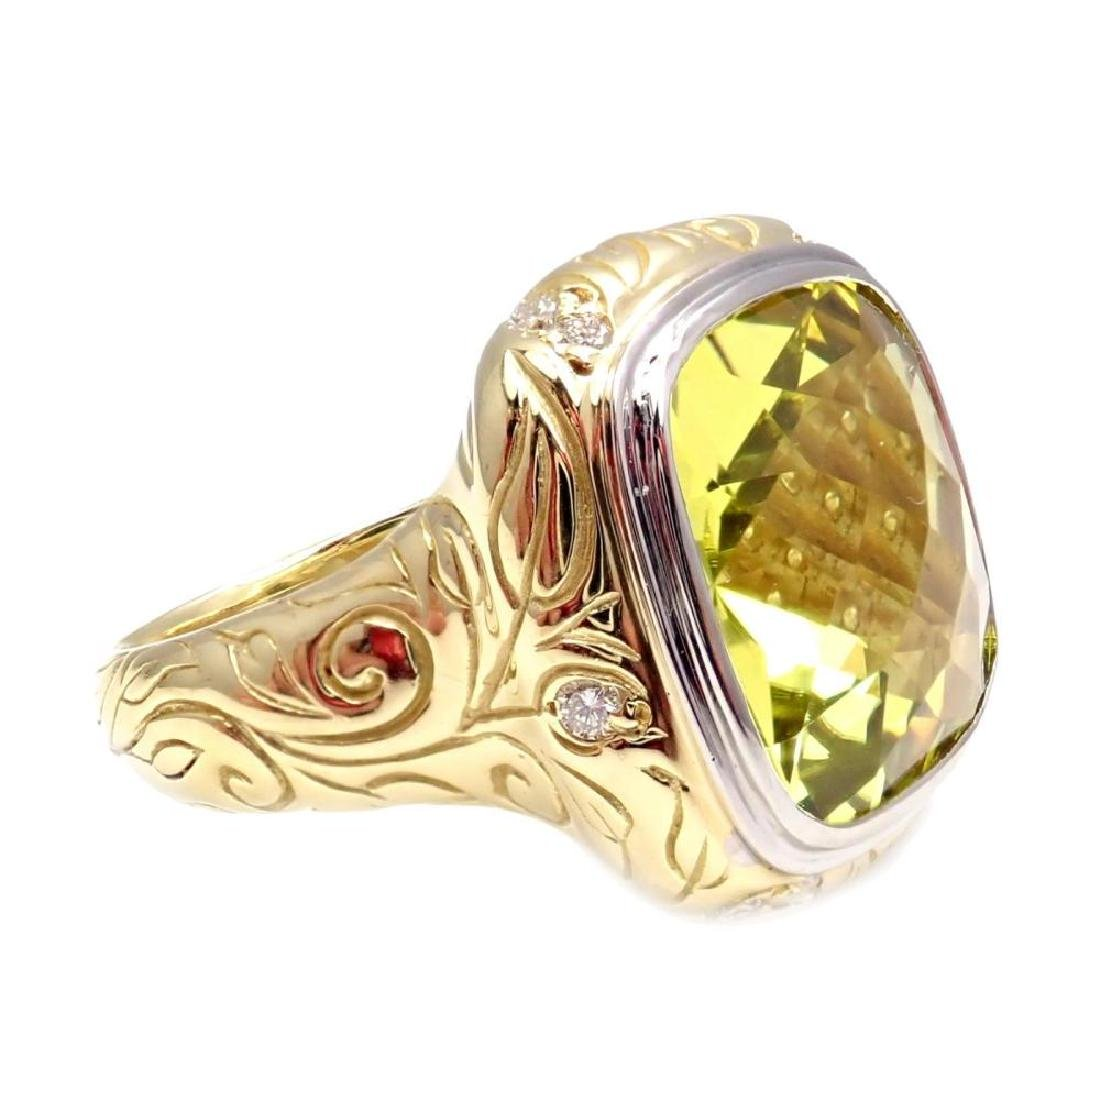 Authentic Seiden Gang 18k Yellow Gold Diamond Lemon